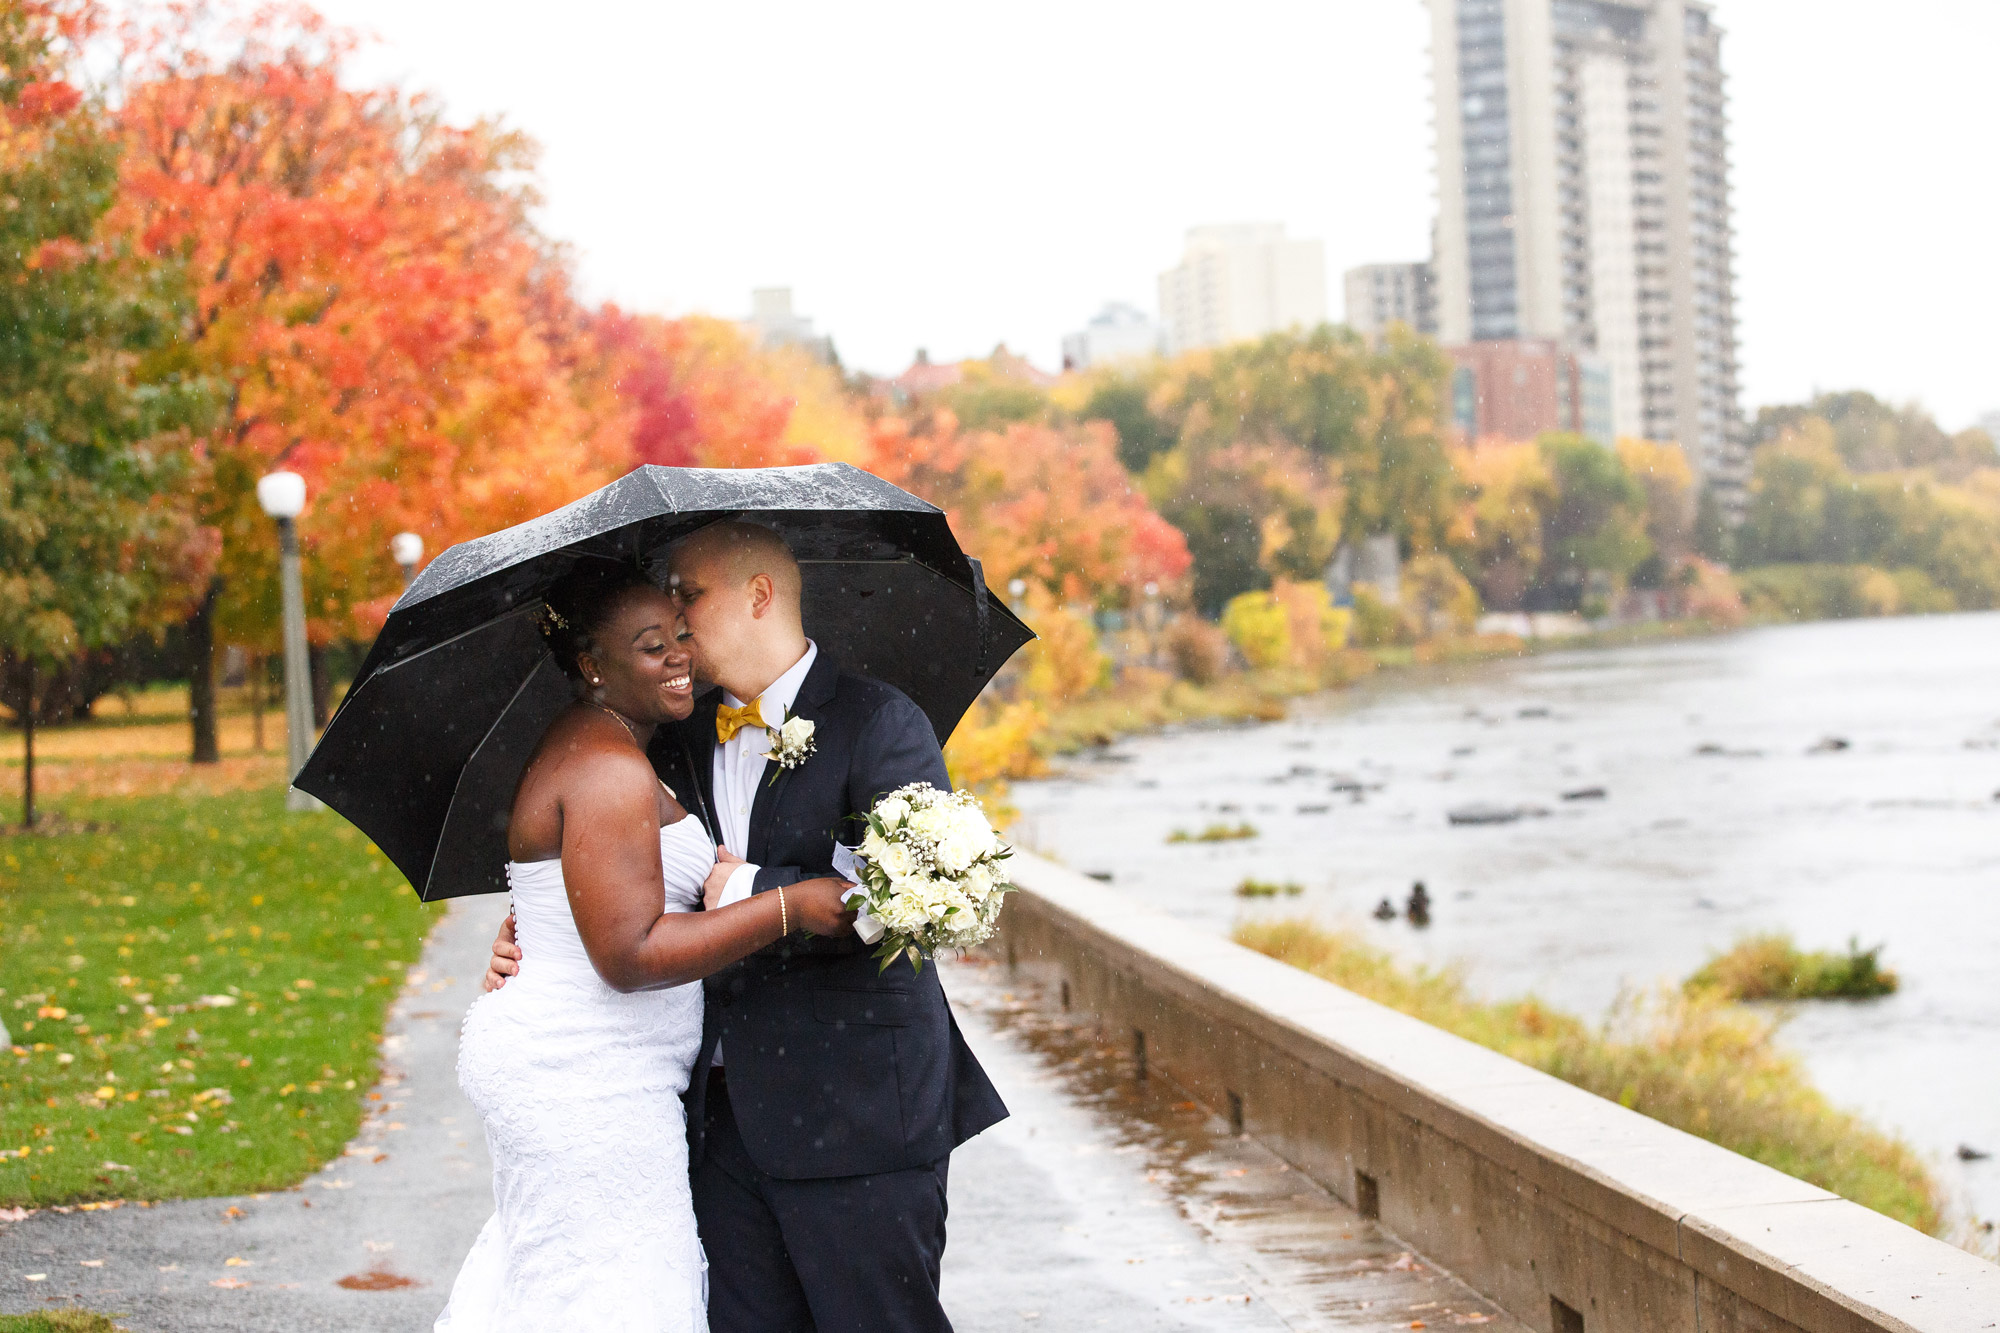 wedding photography session in ottawa